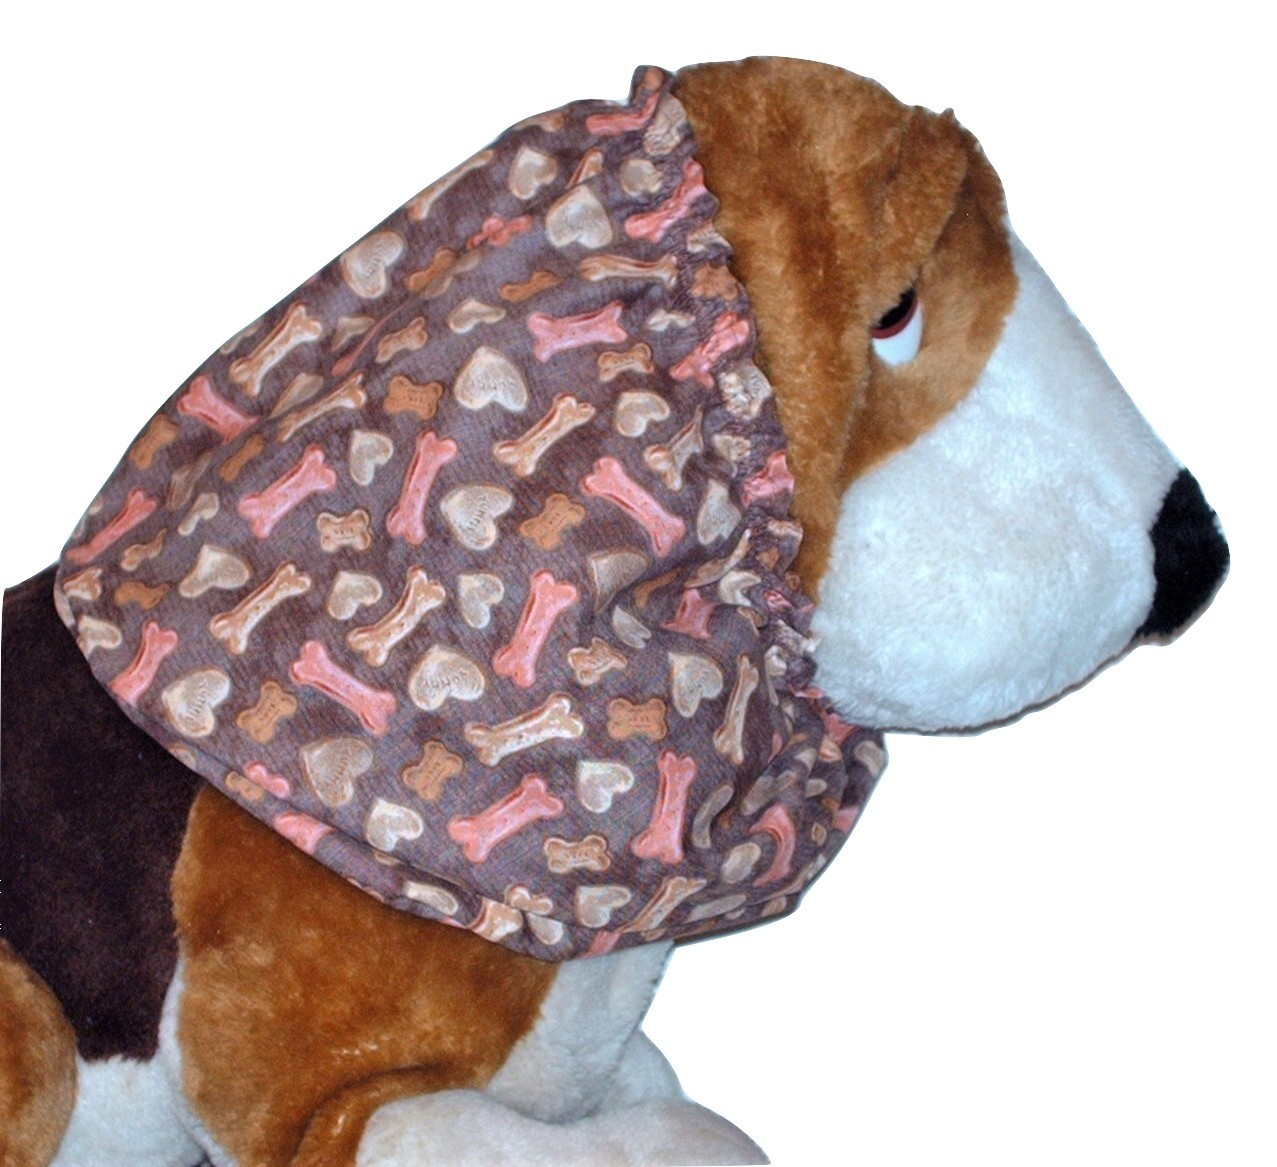 Brown Hearts and Bones Dog Treats Cotton Dog Snood by Howlin Hounds Size Large